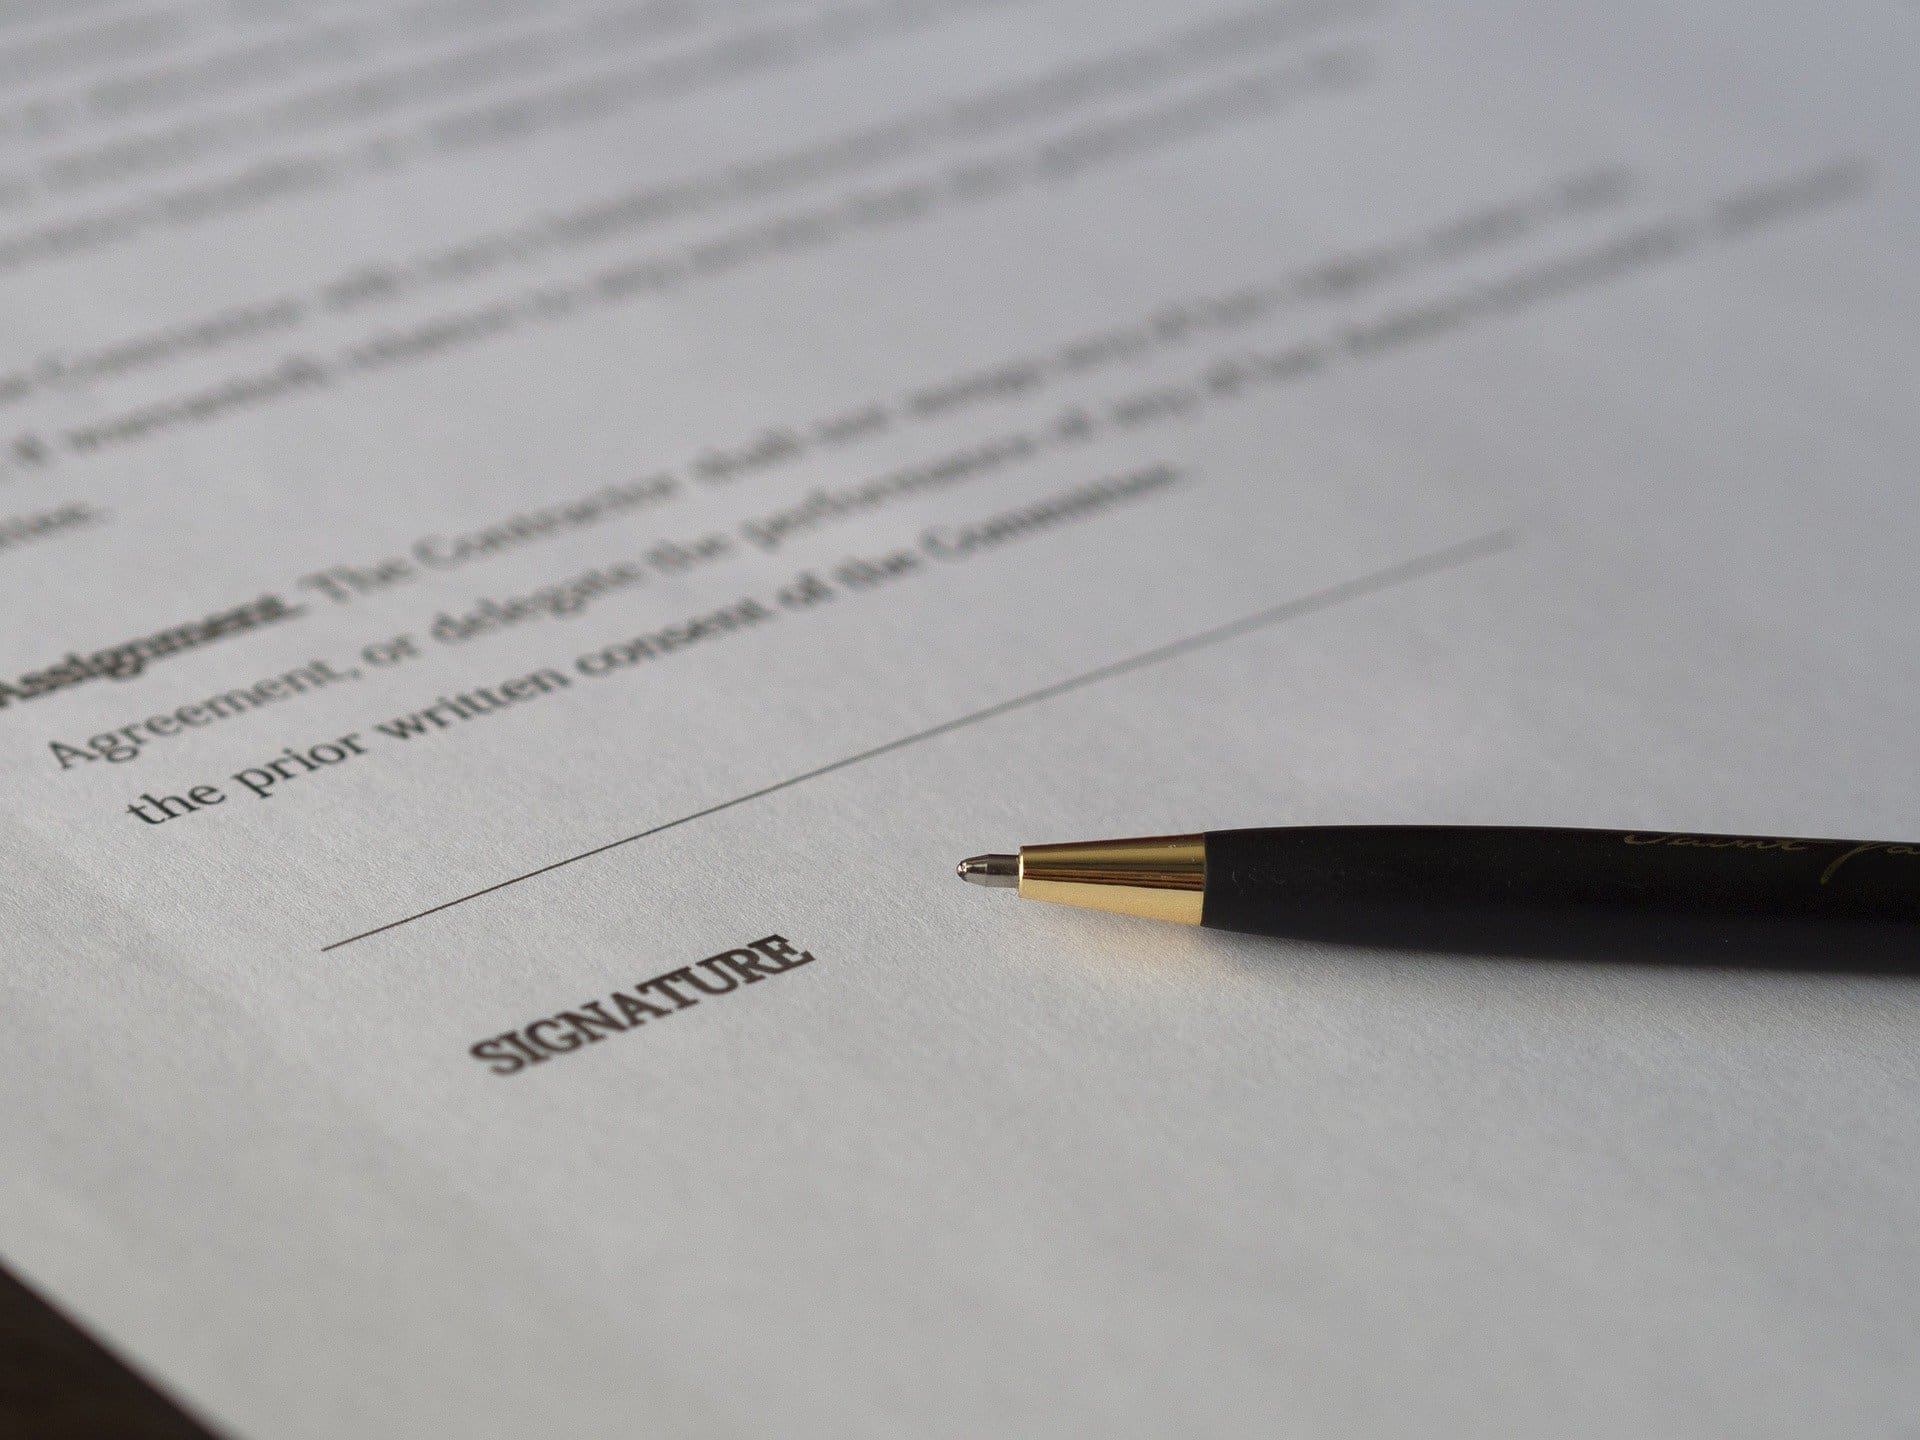 An image of a contract